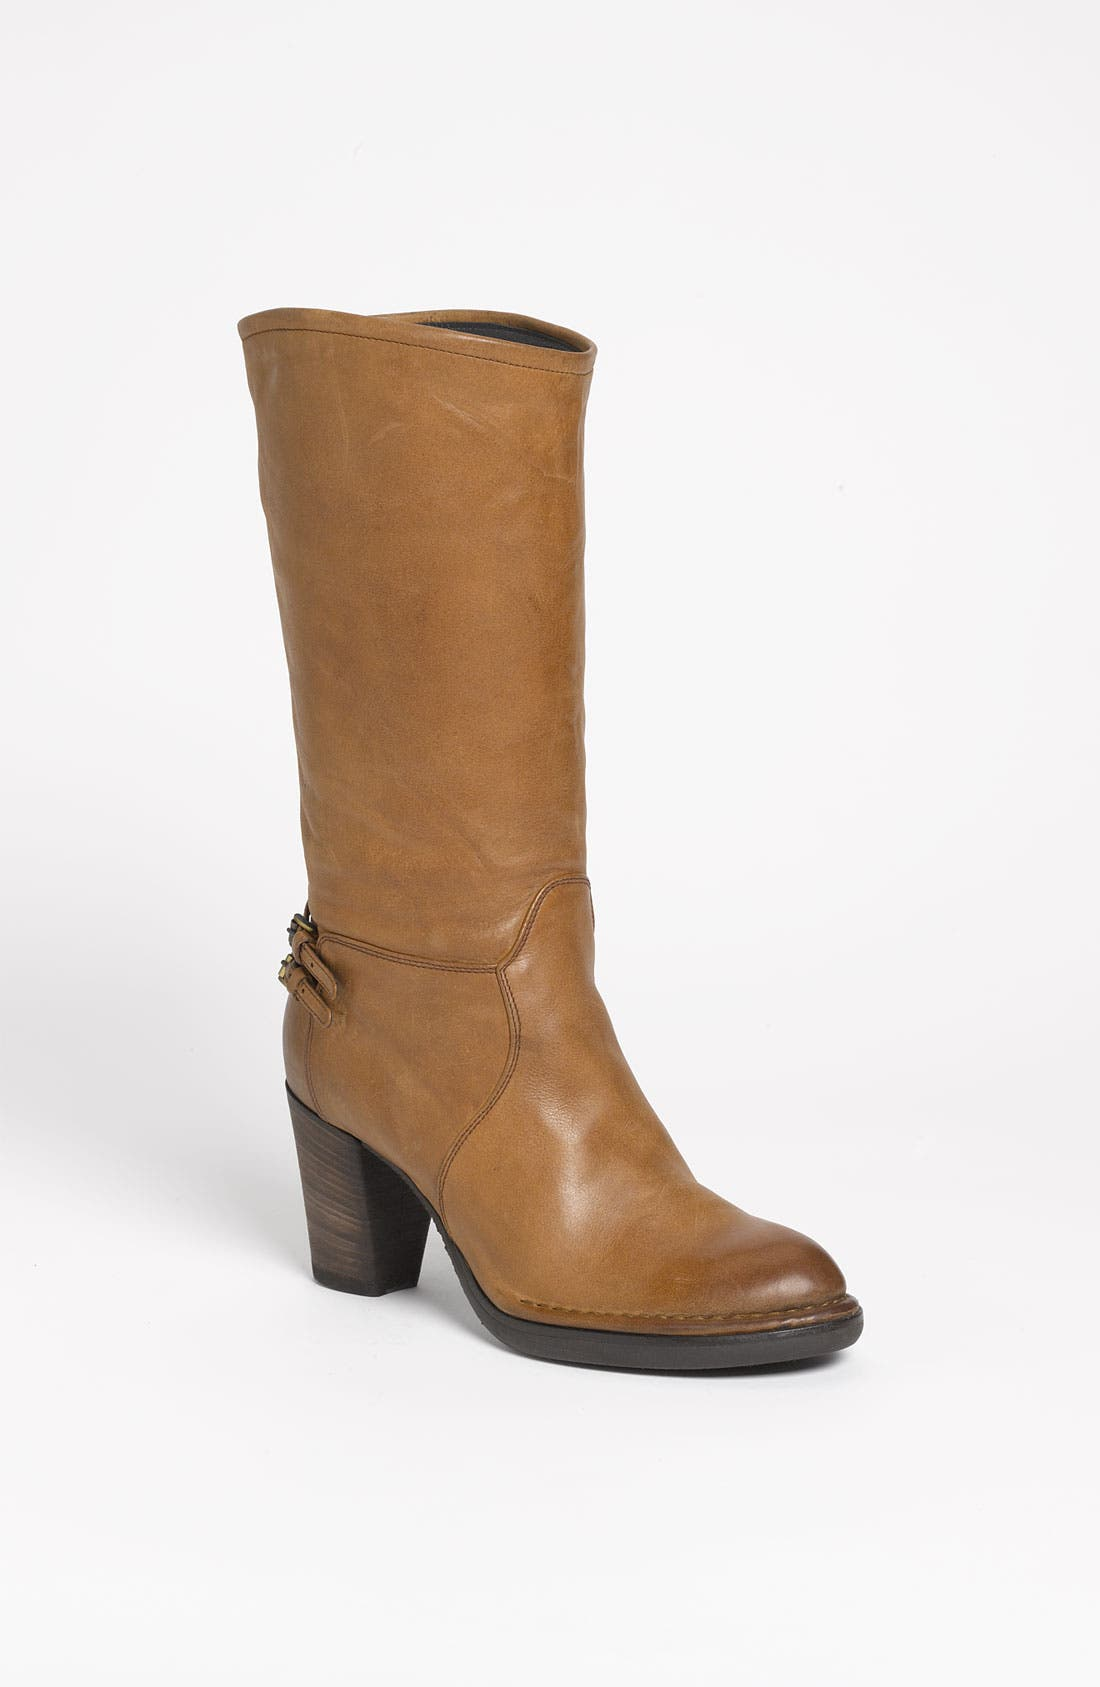 Alternate Image 1 Selected - Alberto Fermani Mid Heel Boot (Nordstrom Exclusive)